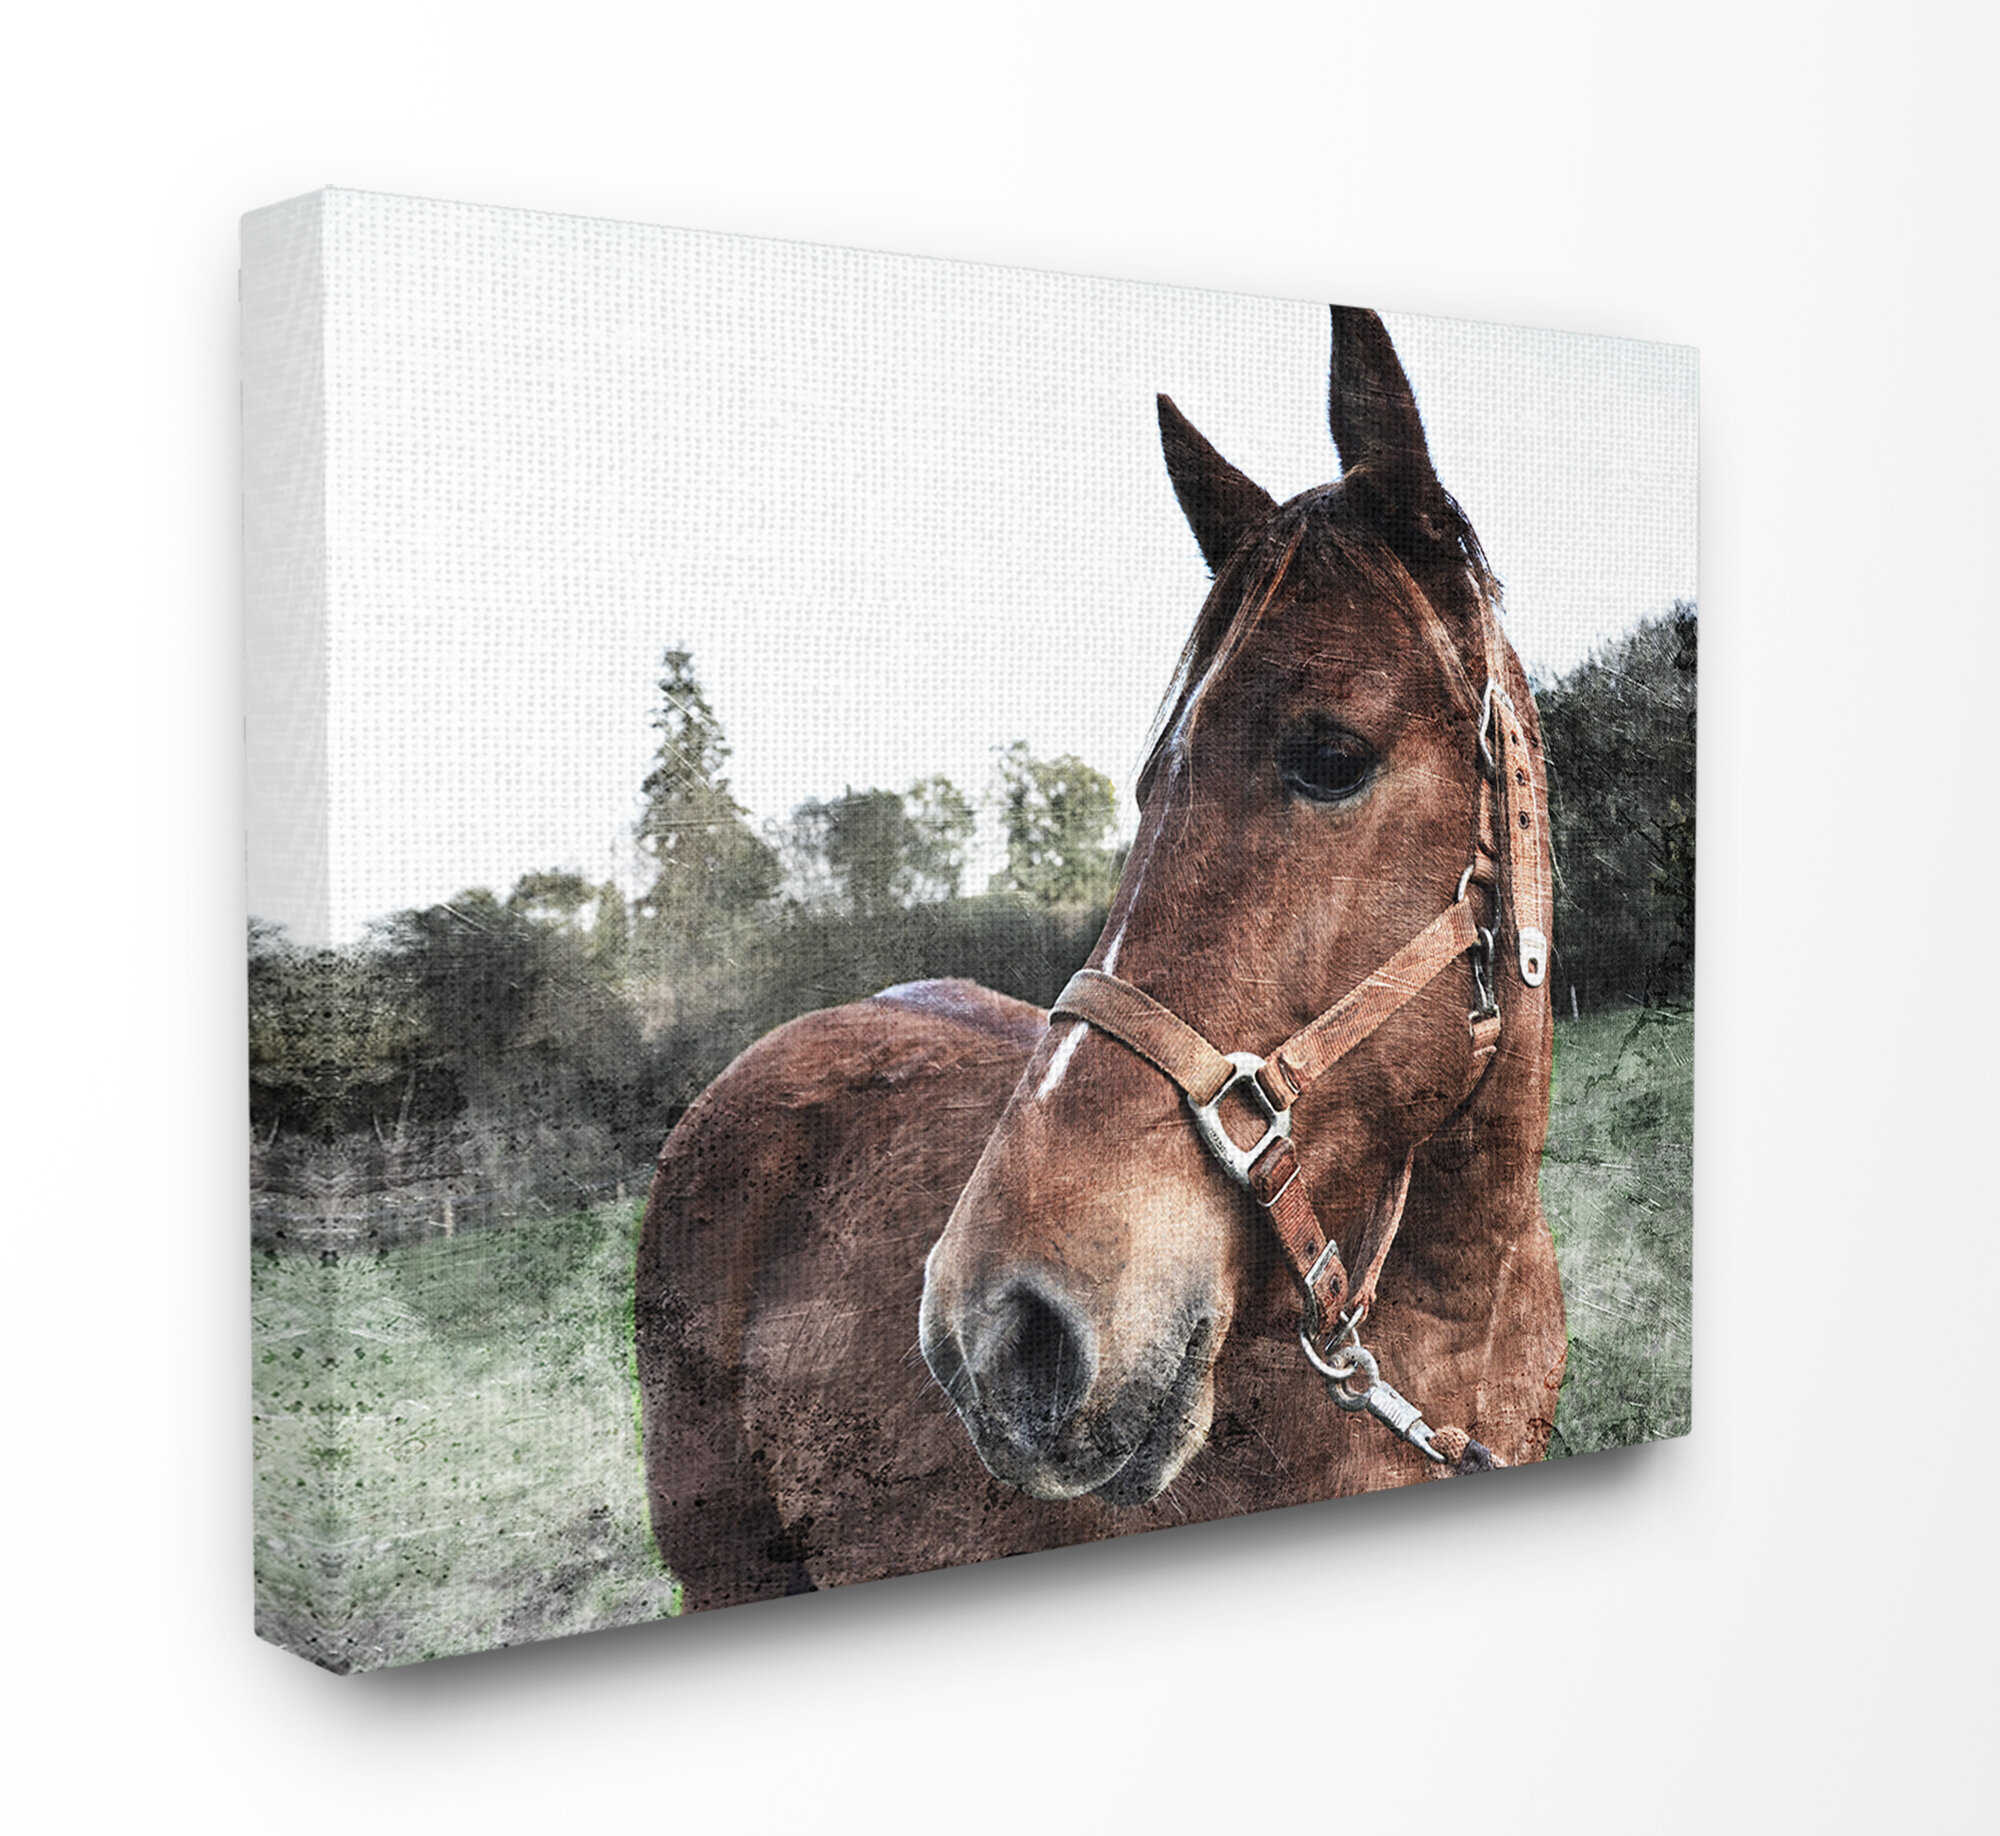 Gracie Oaks Horse Posing In Field By Milli Villa Floater Frame Photographic Print Wayfair Ca